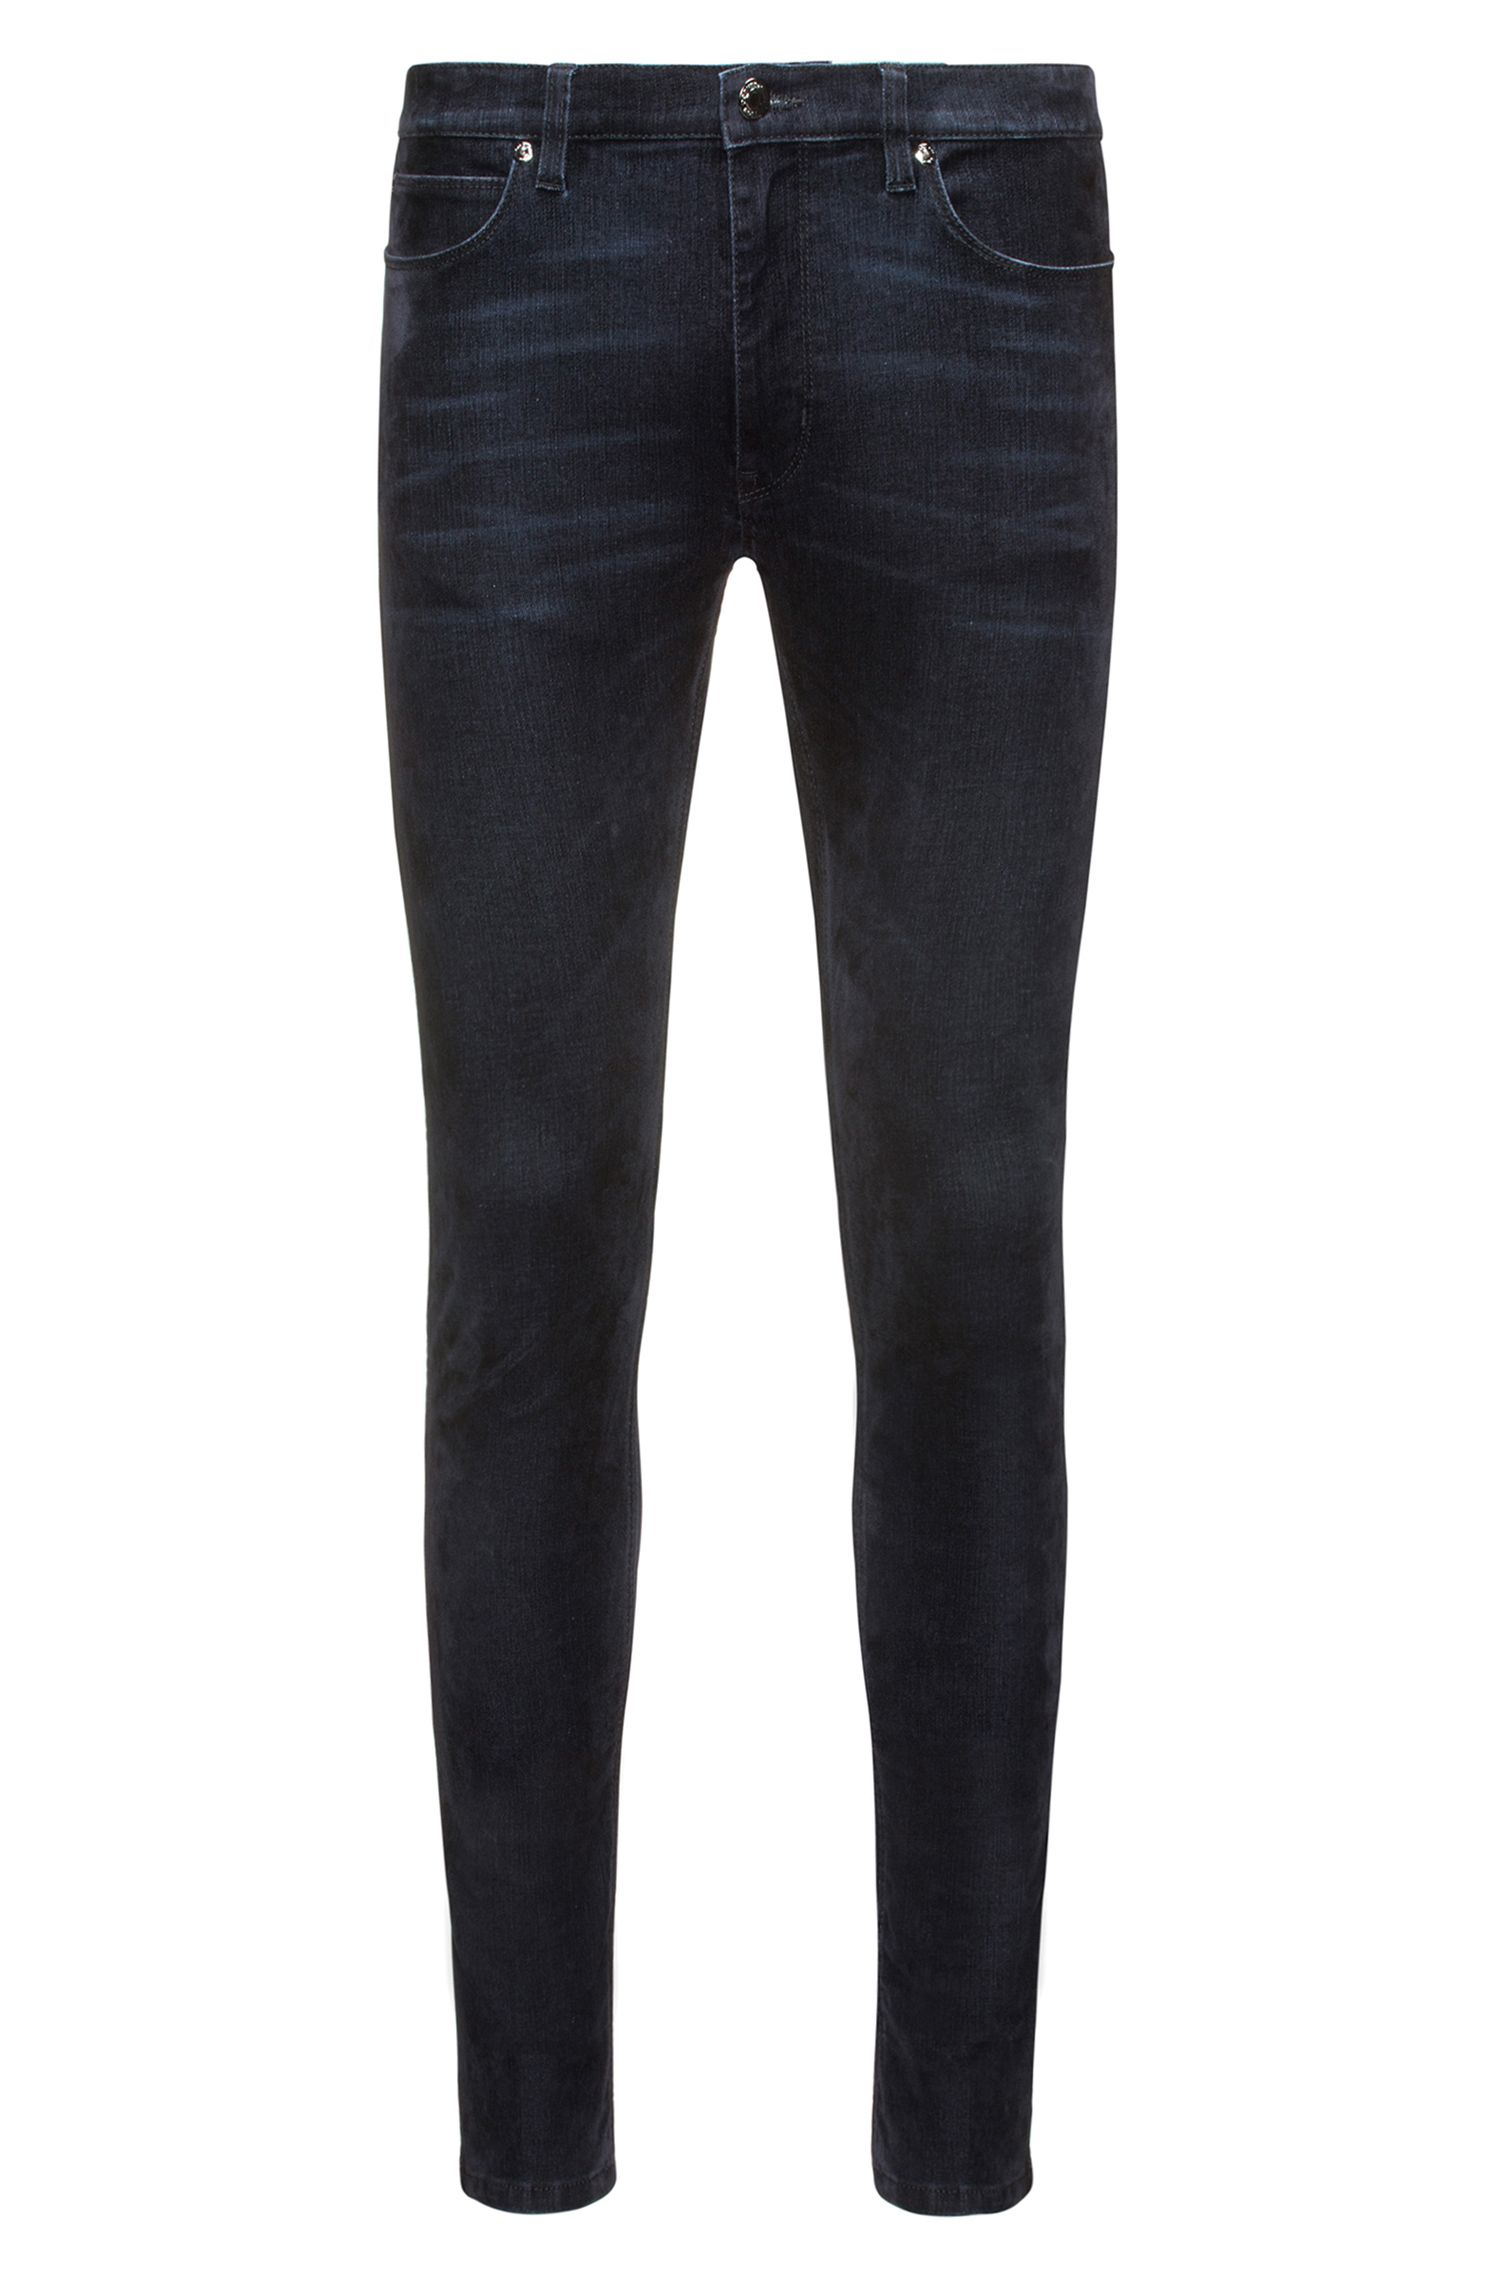 Jeans skinny fit in denim super elasticizzato blu con stampa flock